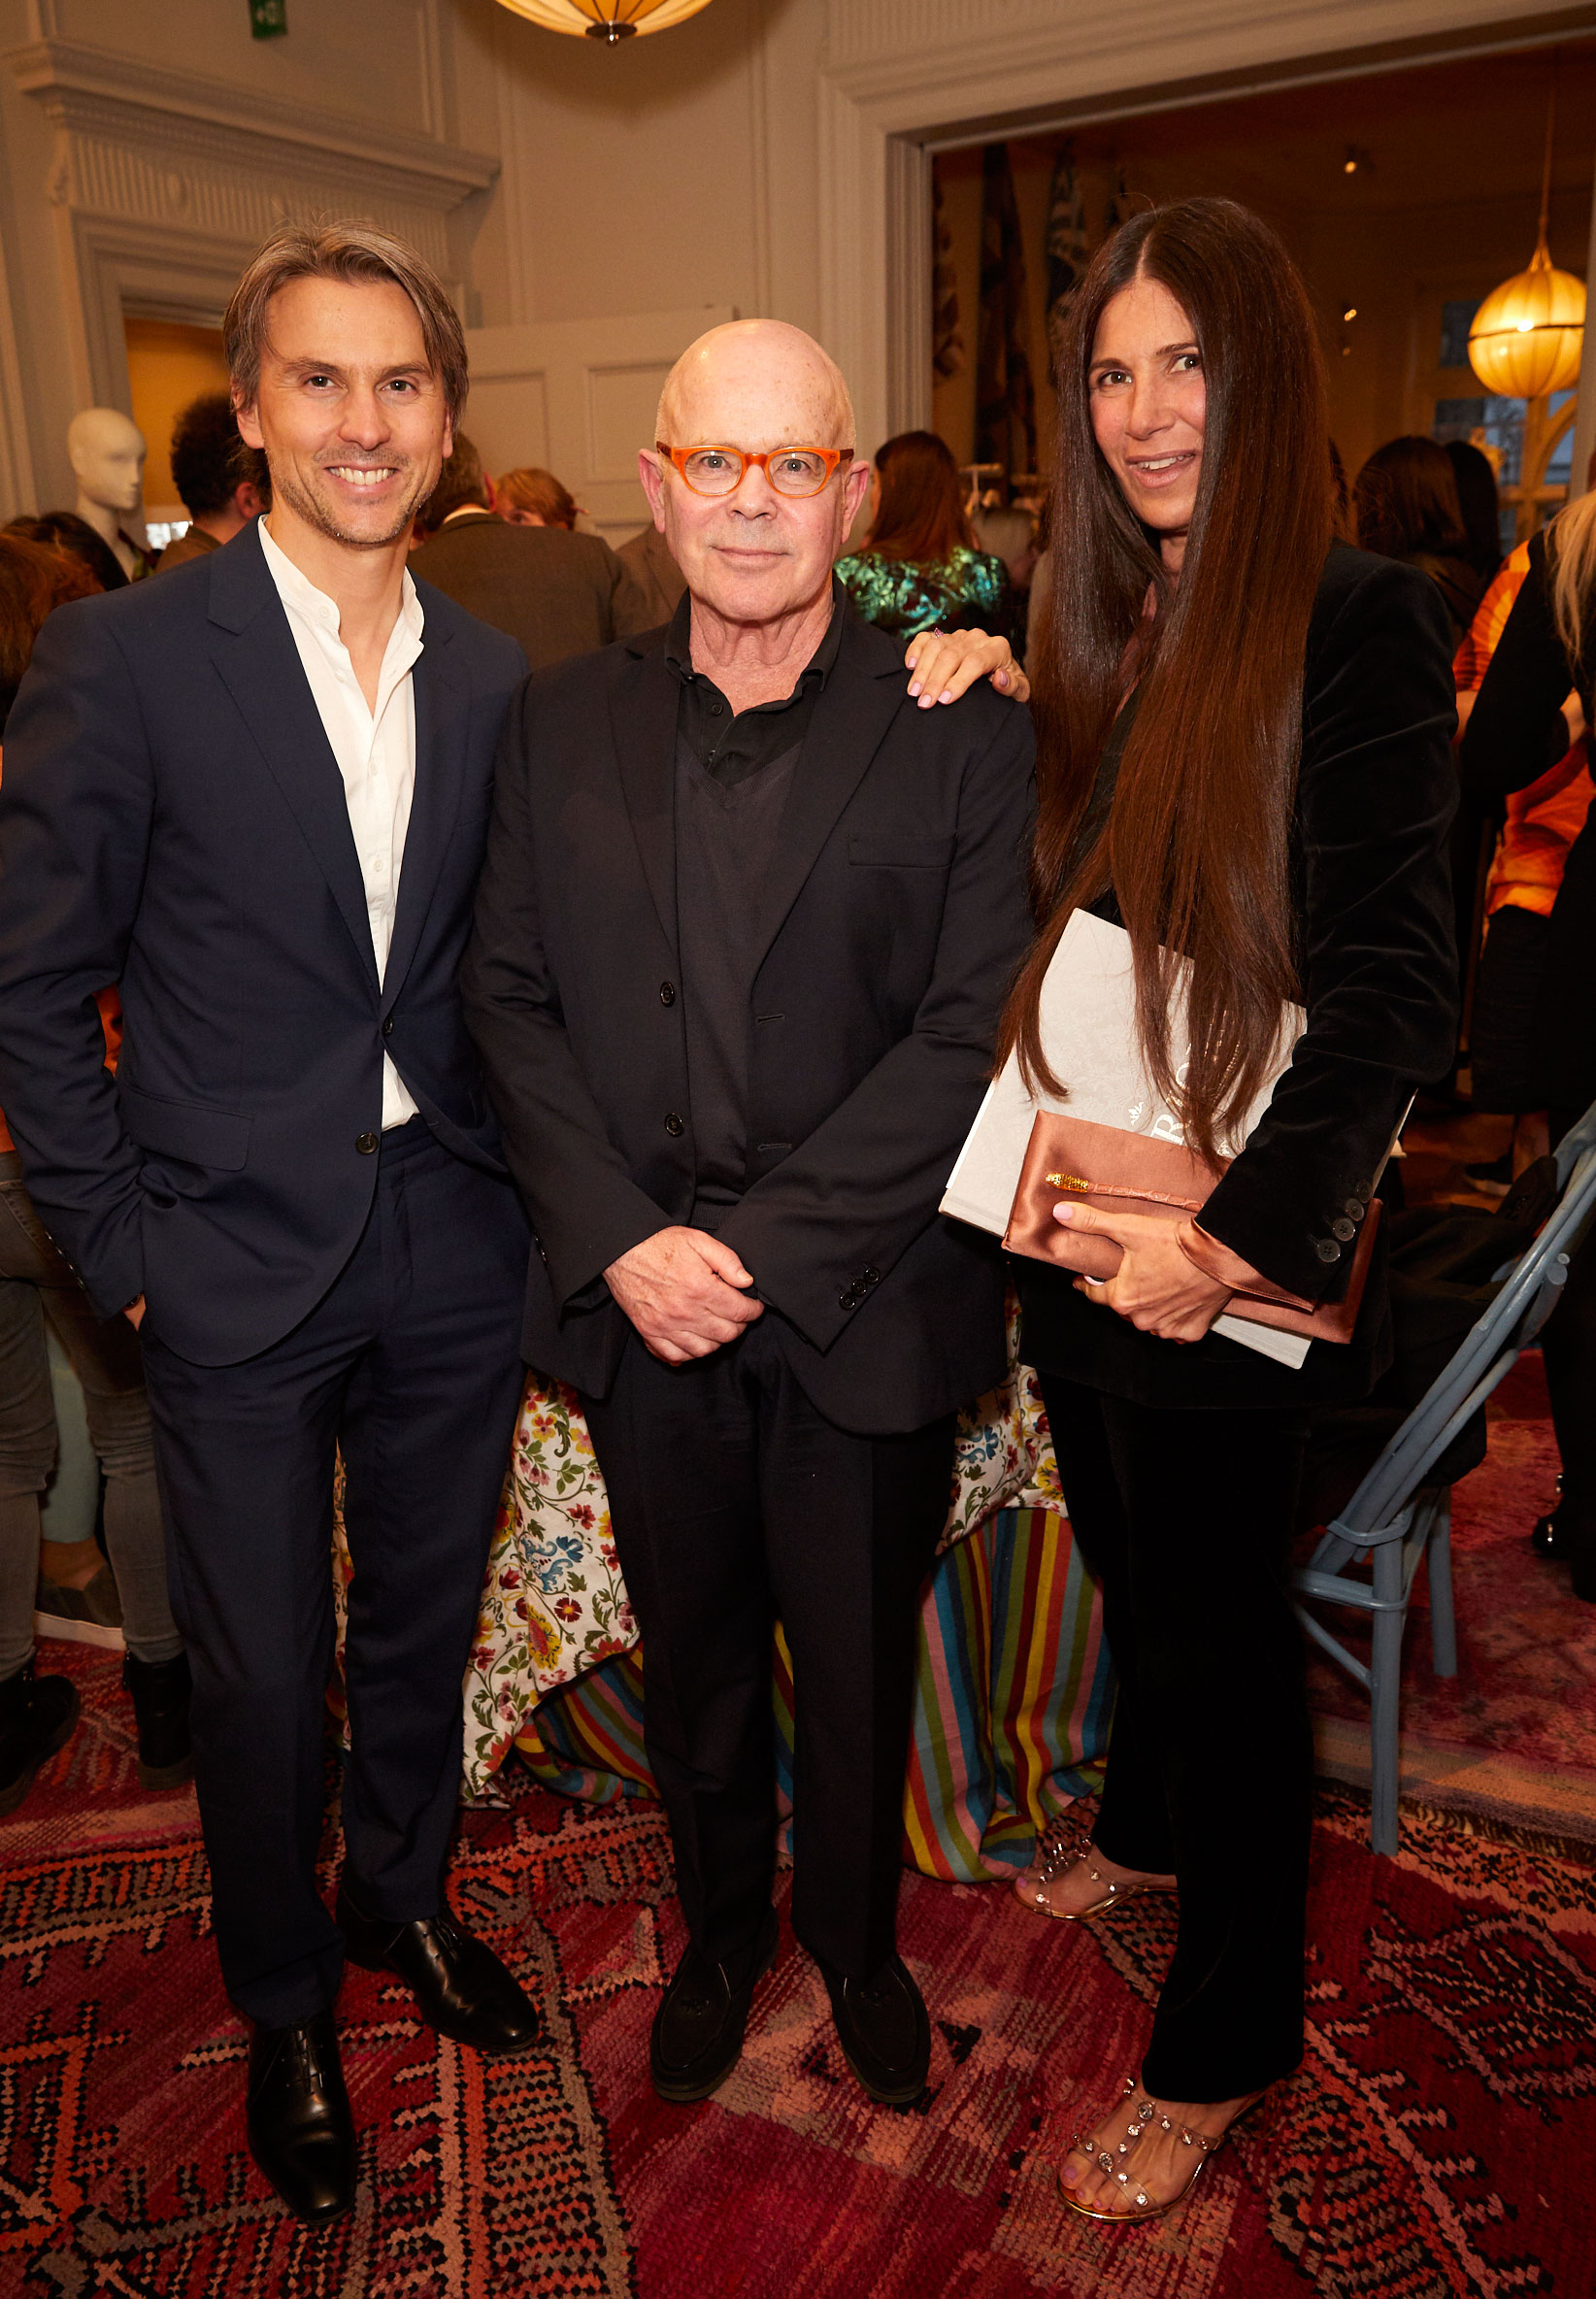 Ulric Jerome, William Norwich and Elizabeth Saltzman at the Interiors launch at MATCHESFASHION.COM in London